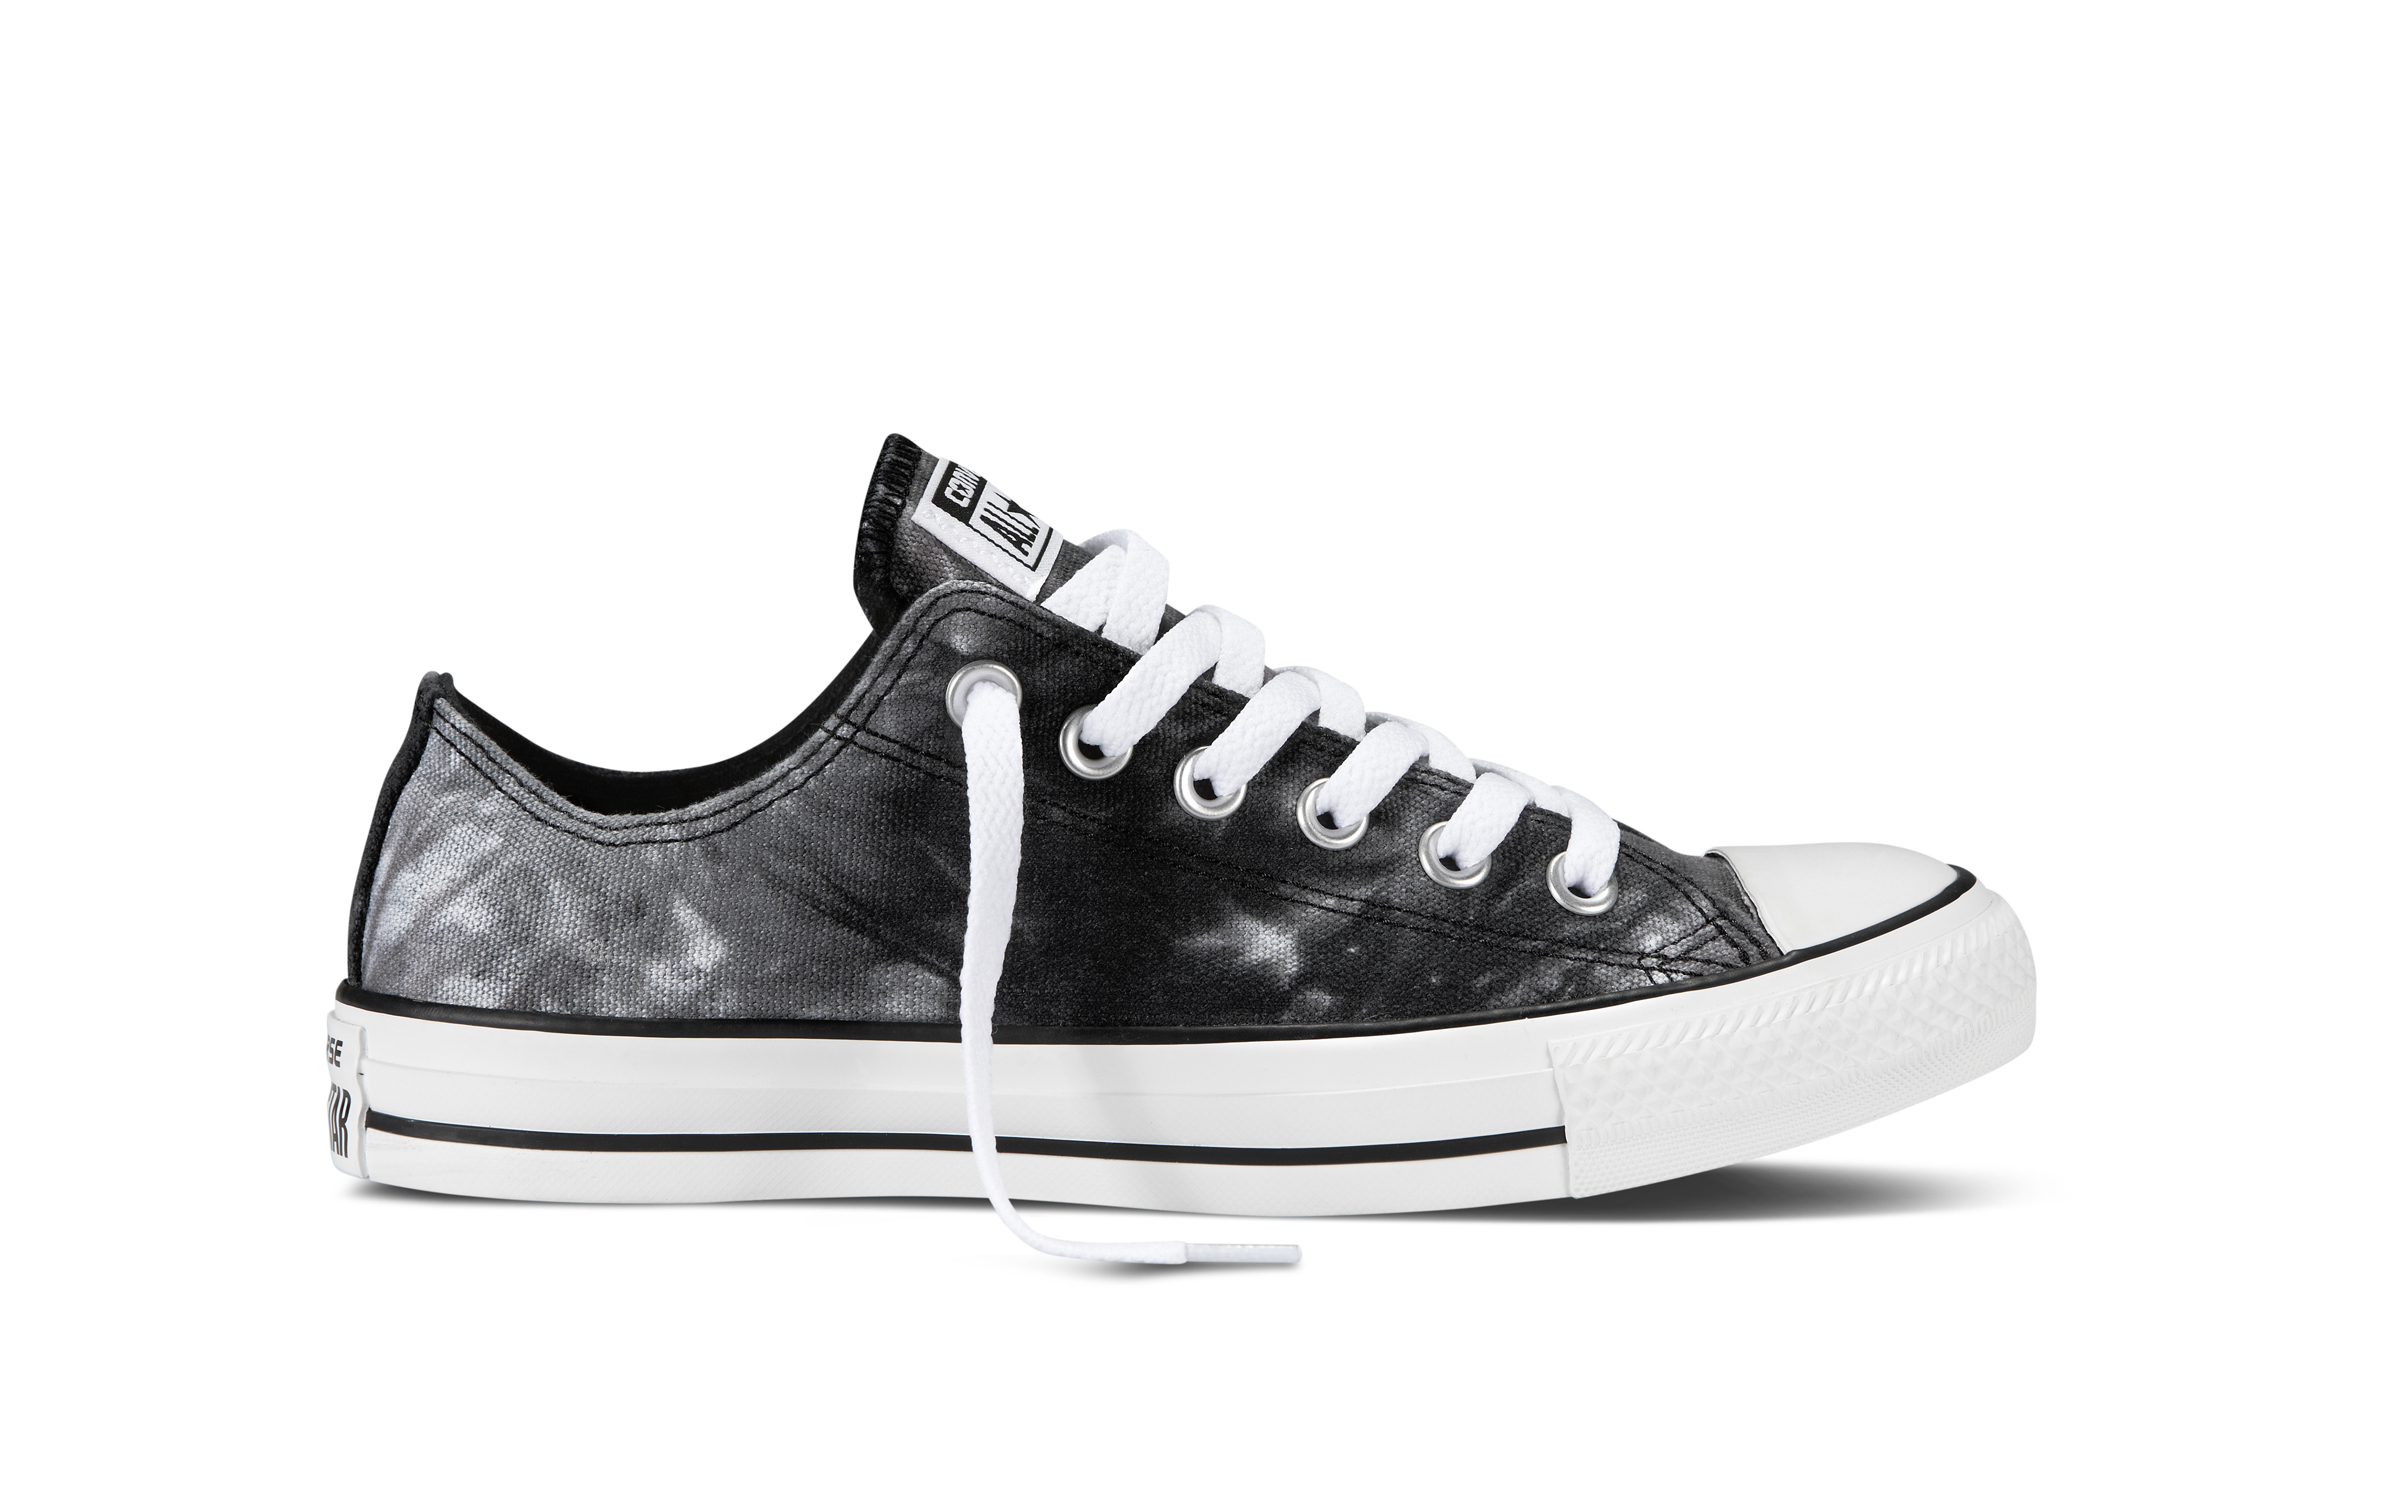 Chuck_Taylor_All_Star_Black_White_1_27619